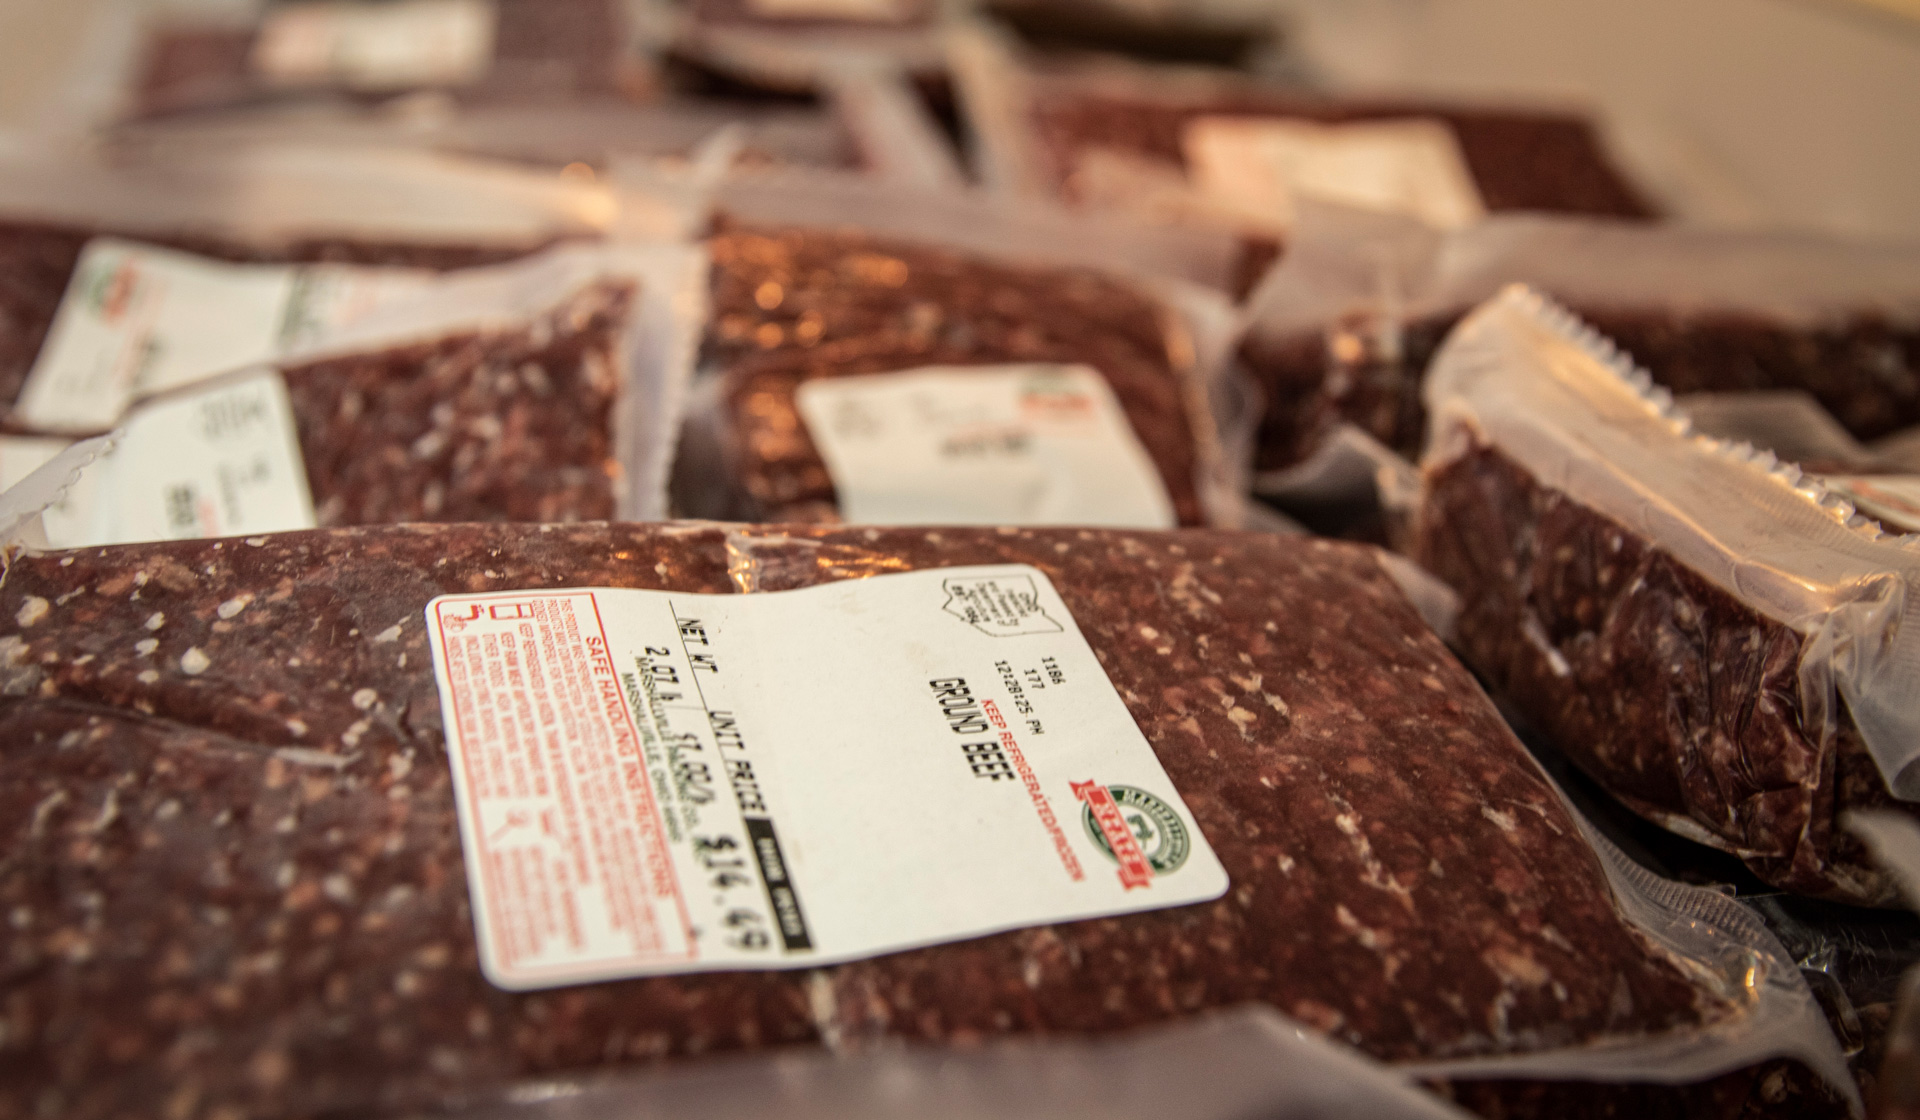 Chaffee's freezer beef business started as a grass-fed alternative for his patients.